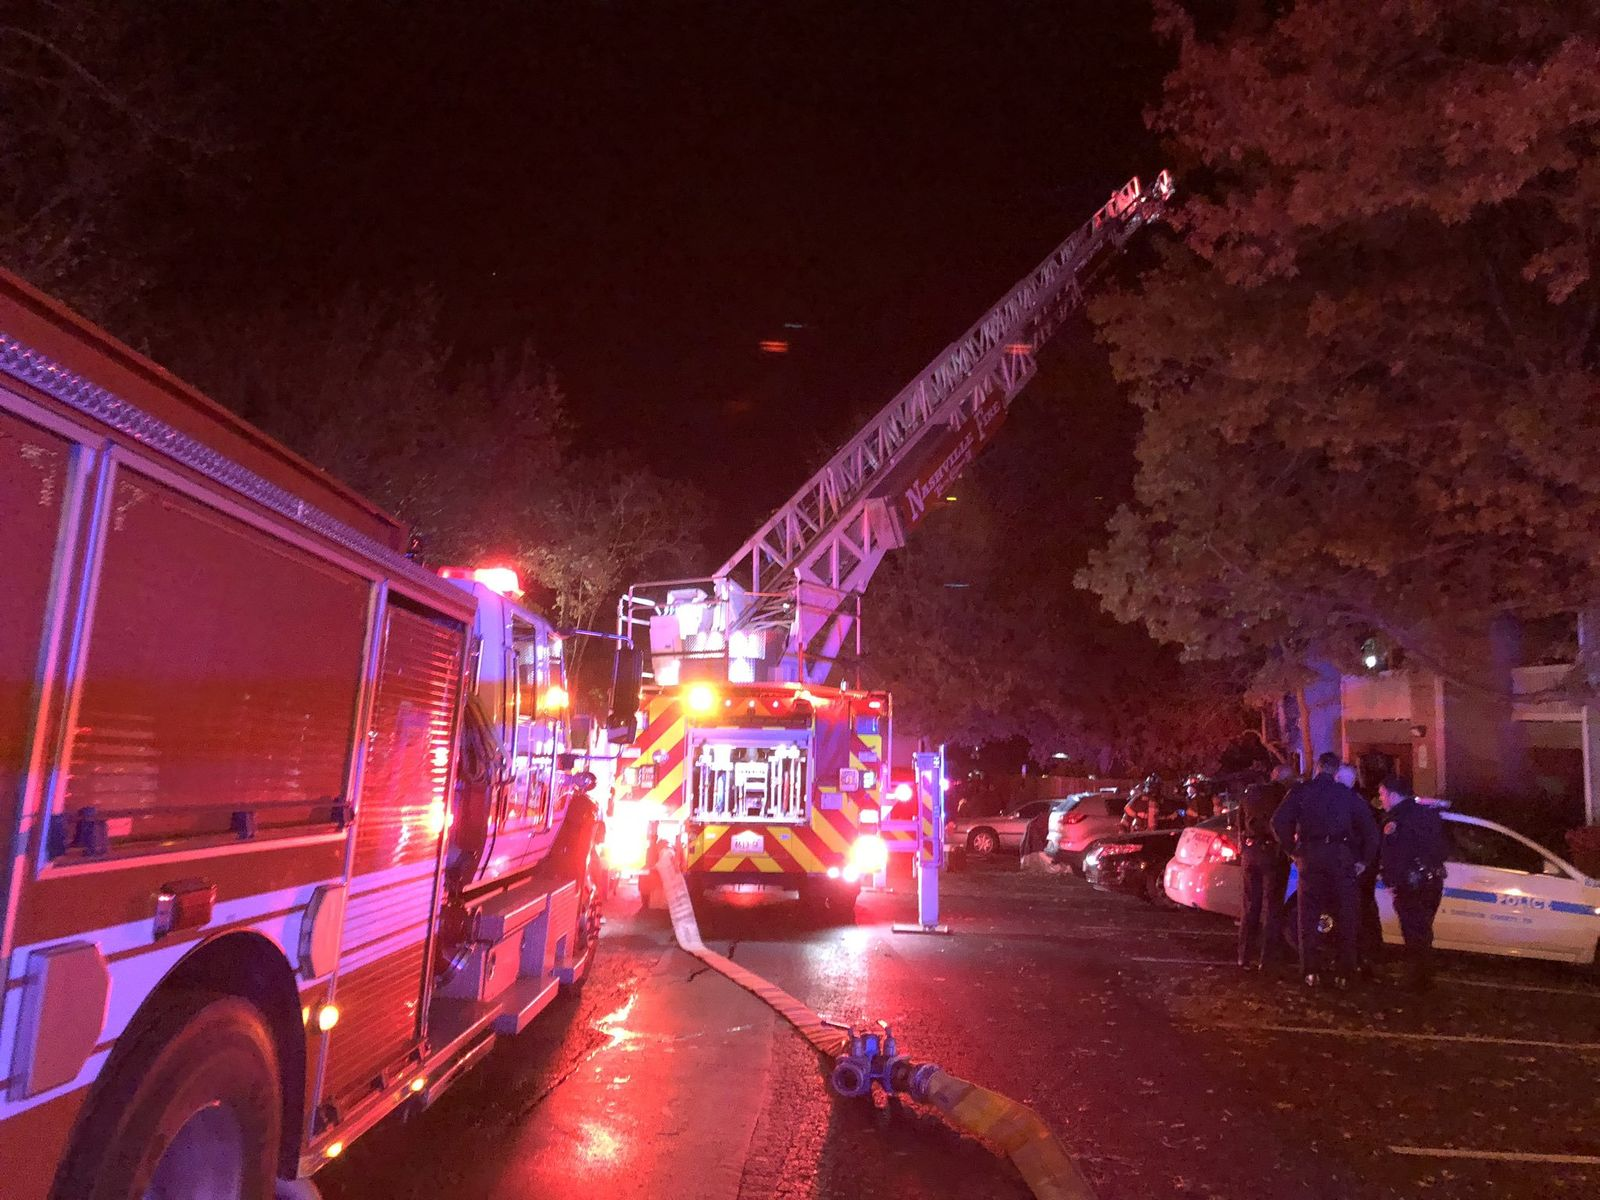 <p>The Nashville Fire Department is responding to a reported fatal crash and fire at a Hermitage apartment complex. PHOTO: Nashville Fire Department</p>